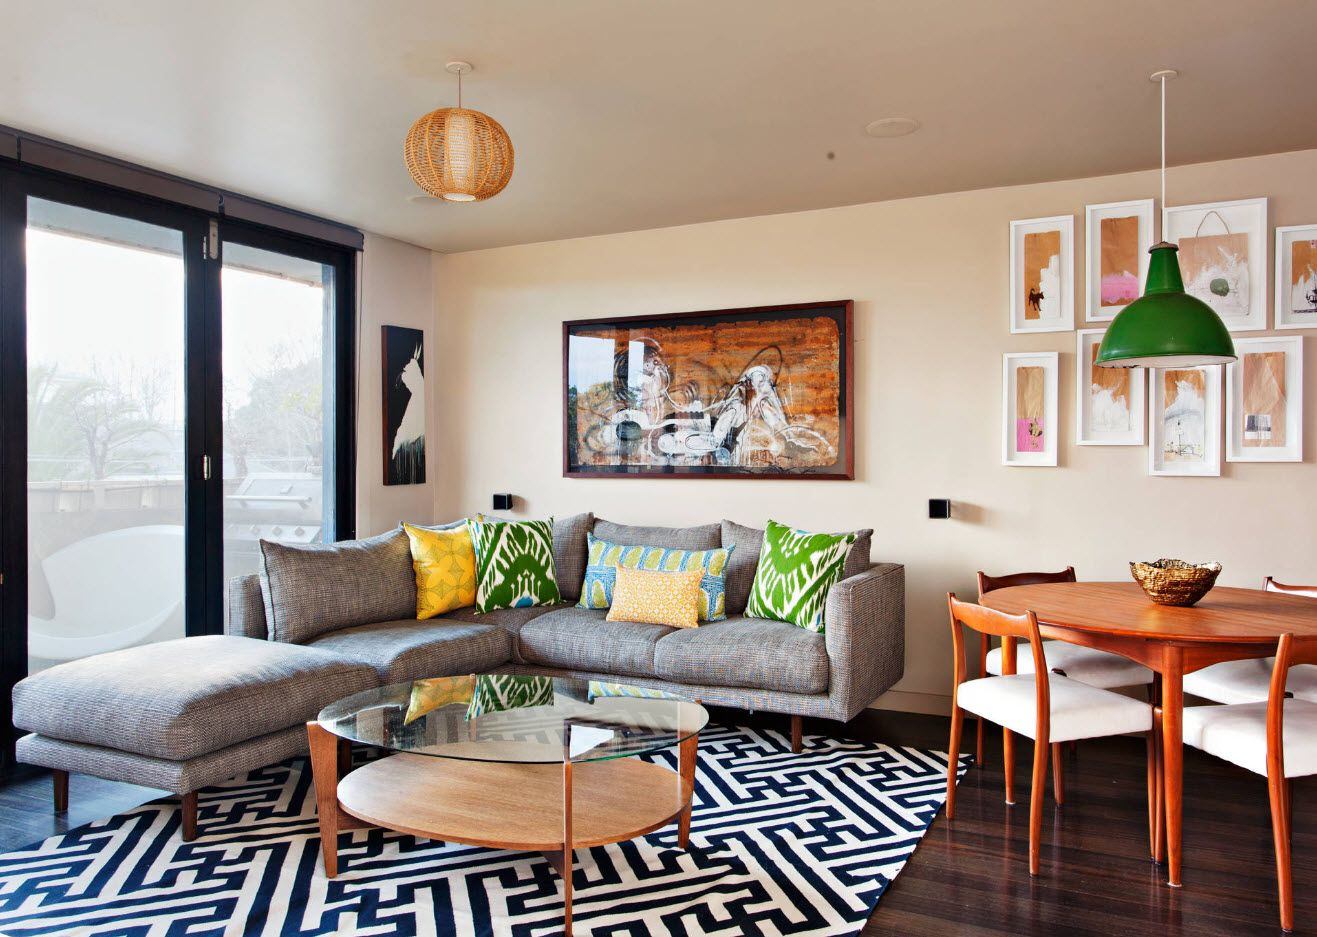 Modern widespread interior design and layout of the living room